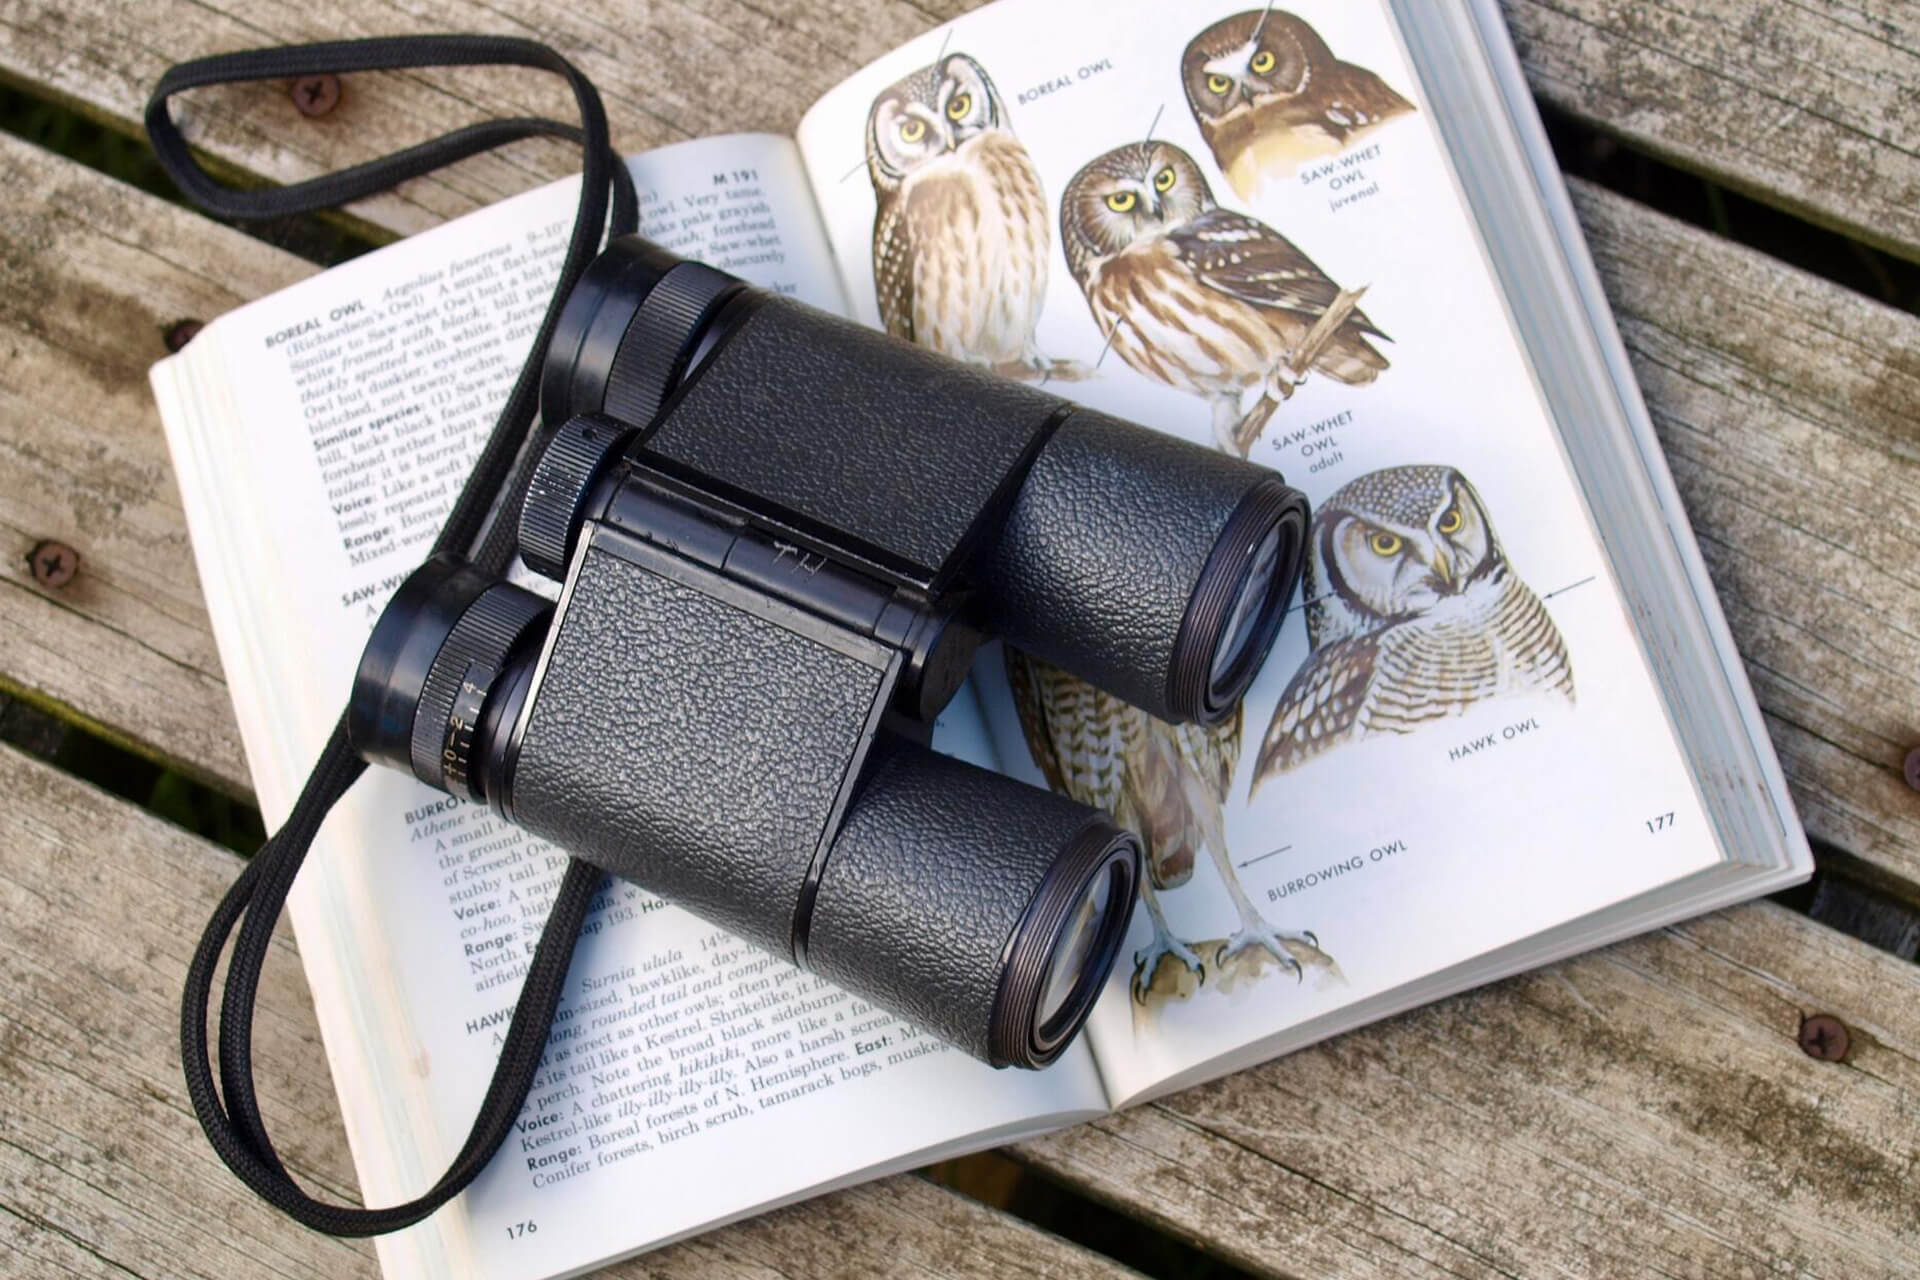 Binoculars and a birdwatching book open to a page with owls on a wooden slat surface